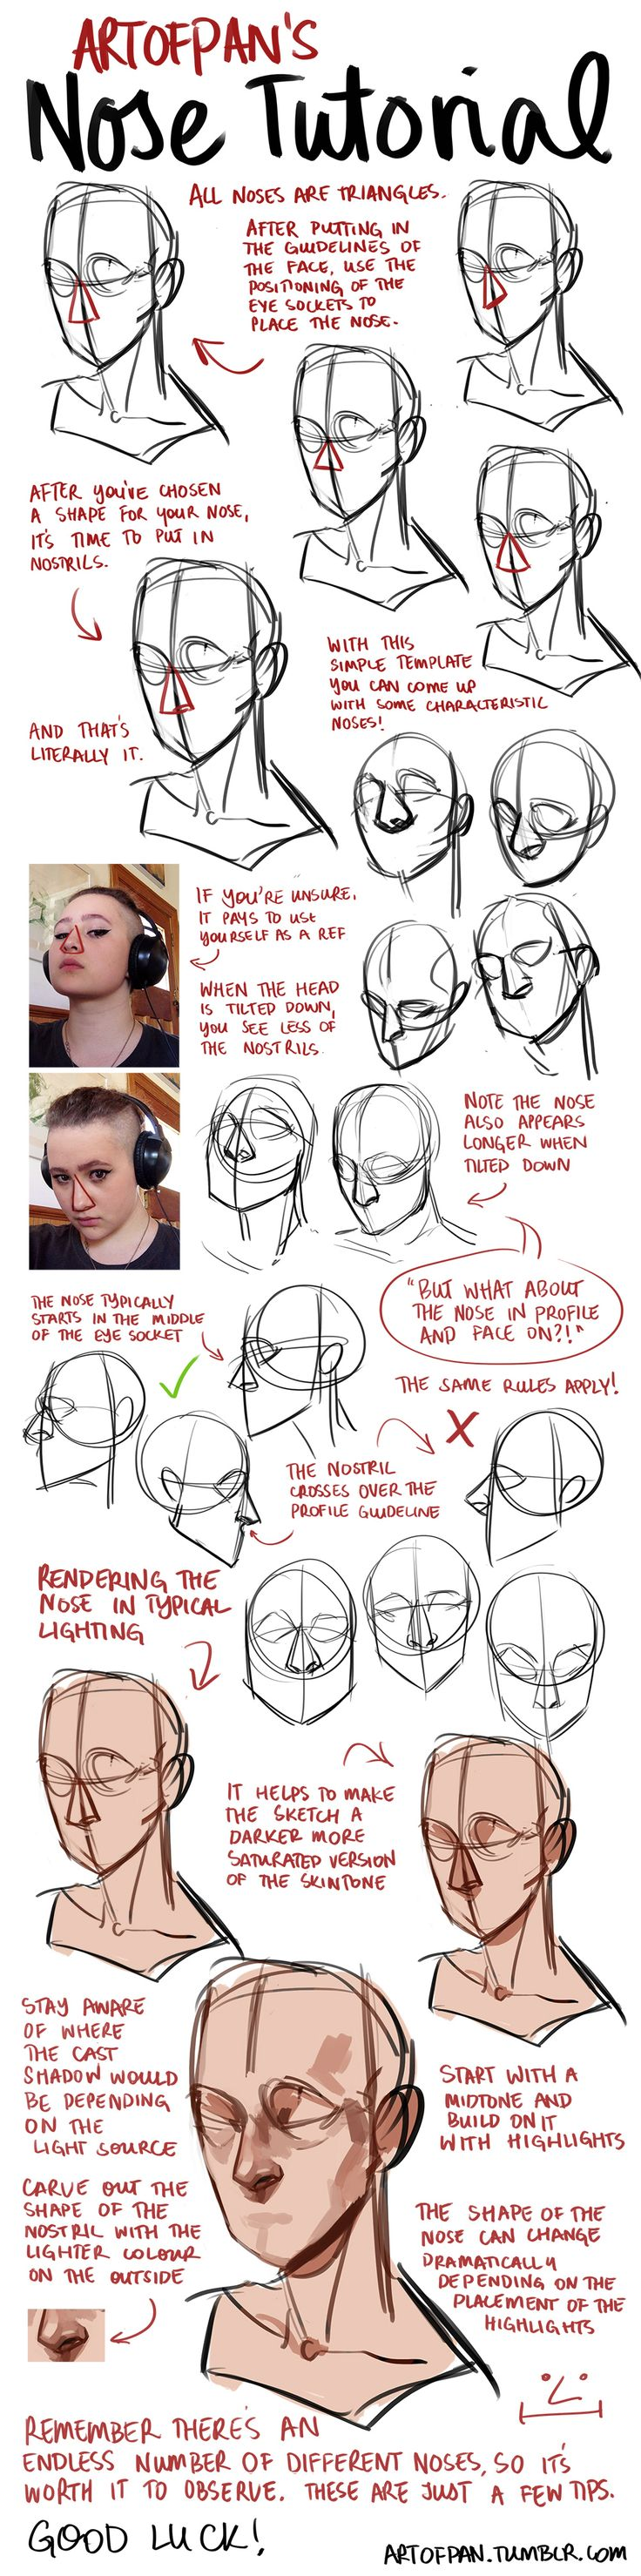 Nose Tutorial by artofpan on DeviantArt